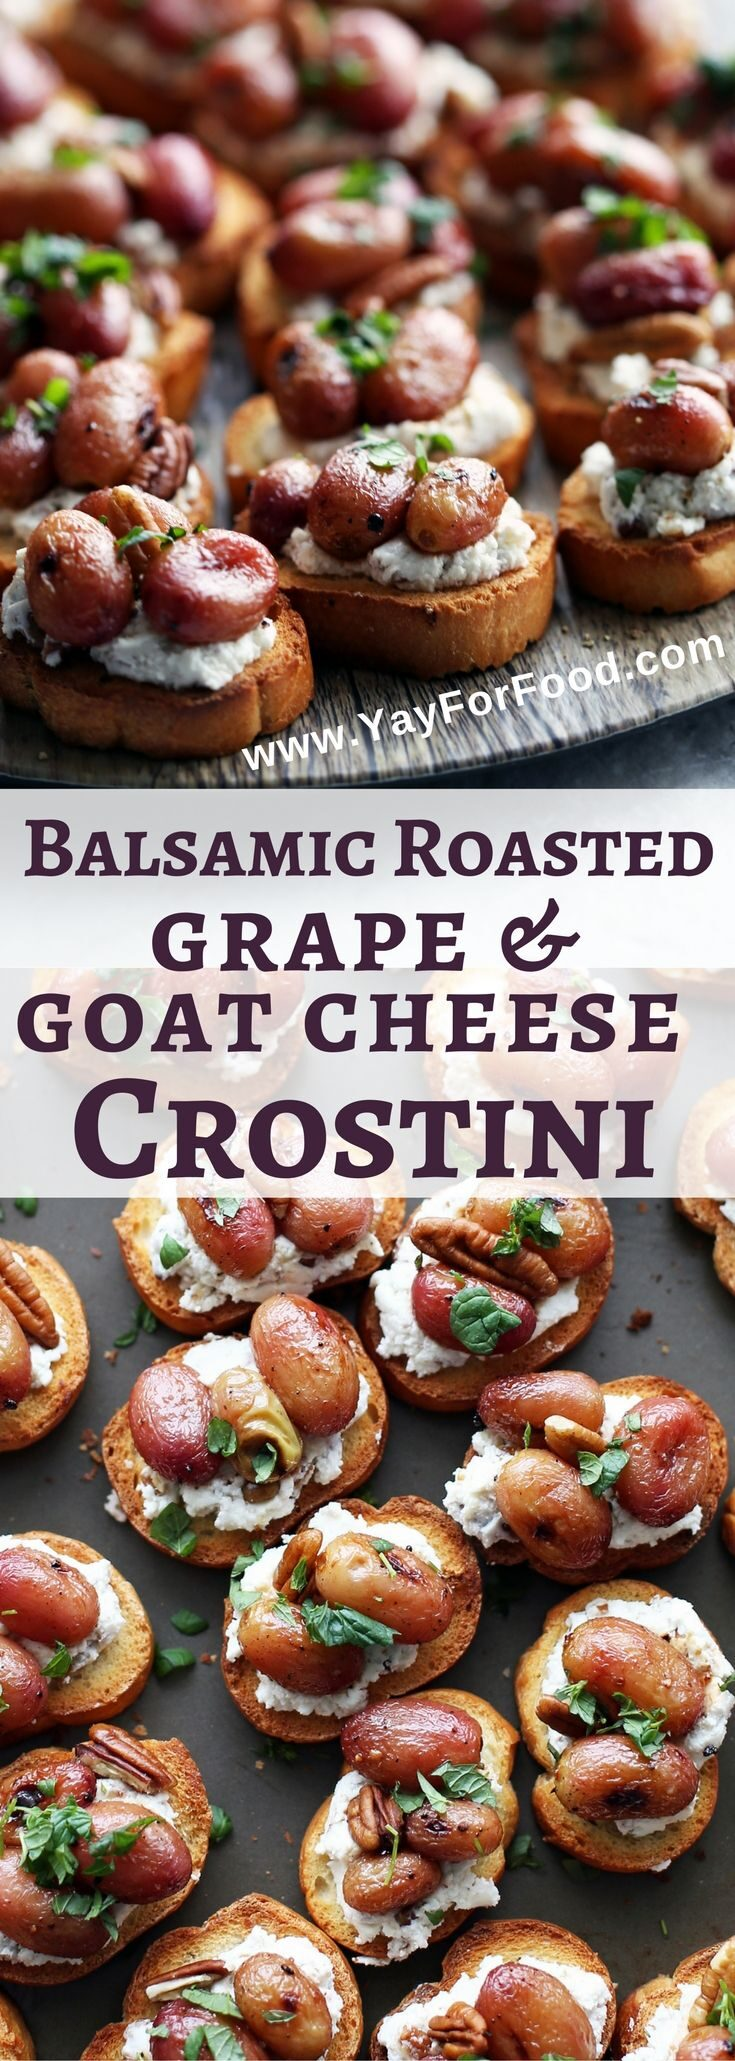 Check out this delicious appetizer featuring balsamic roasted sweet grapes, creamy goat cheese and nutty pecans on a crunchy crostini. It's ready in only 30 minutes!